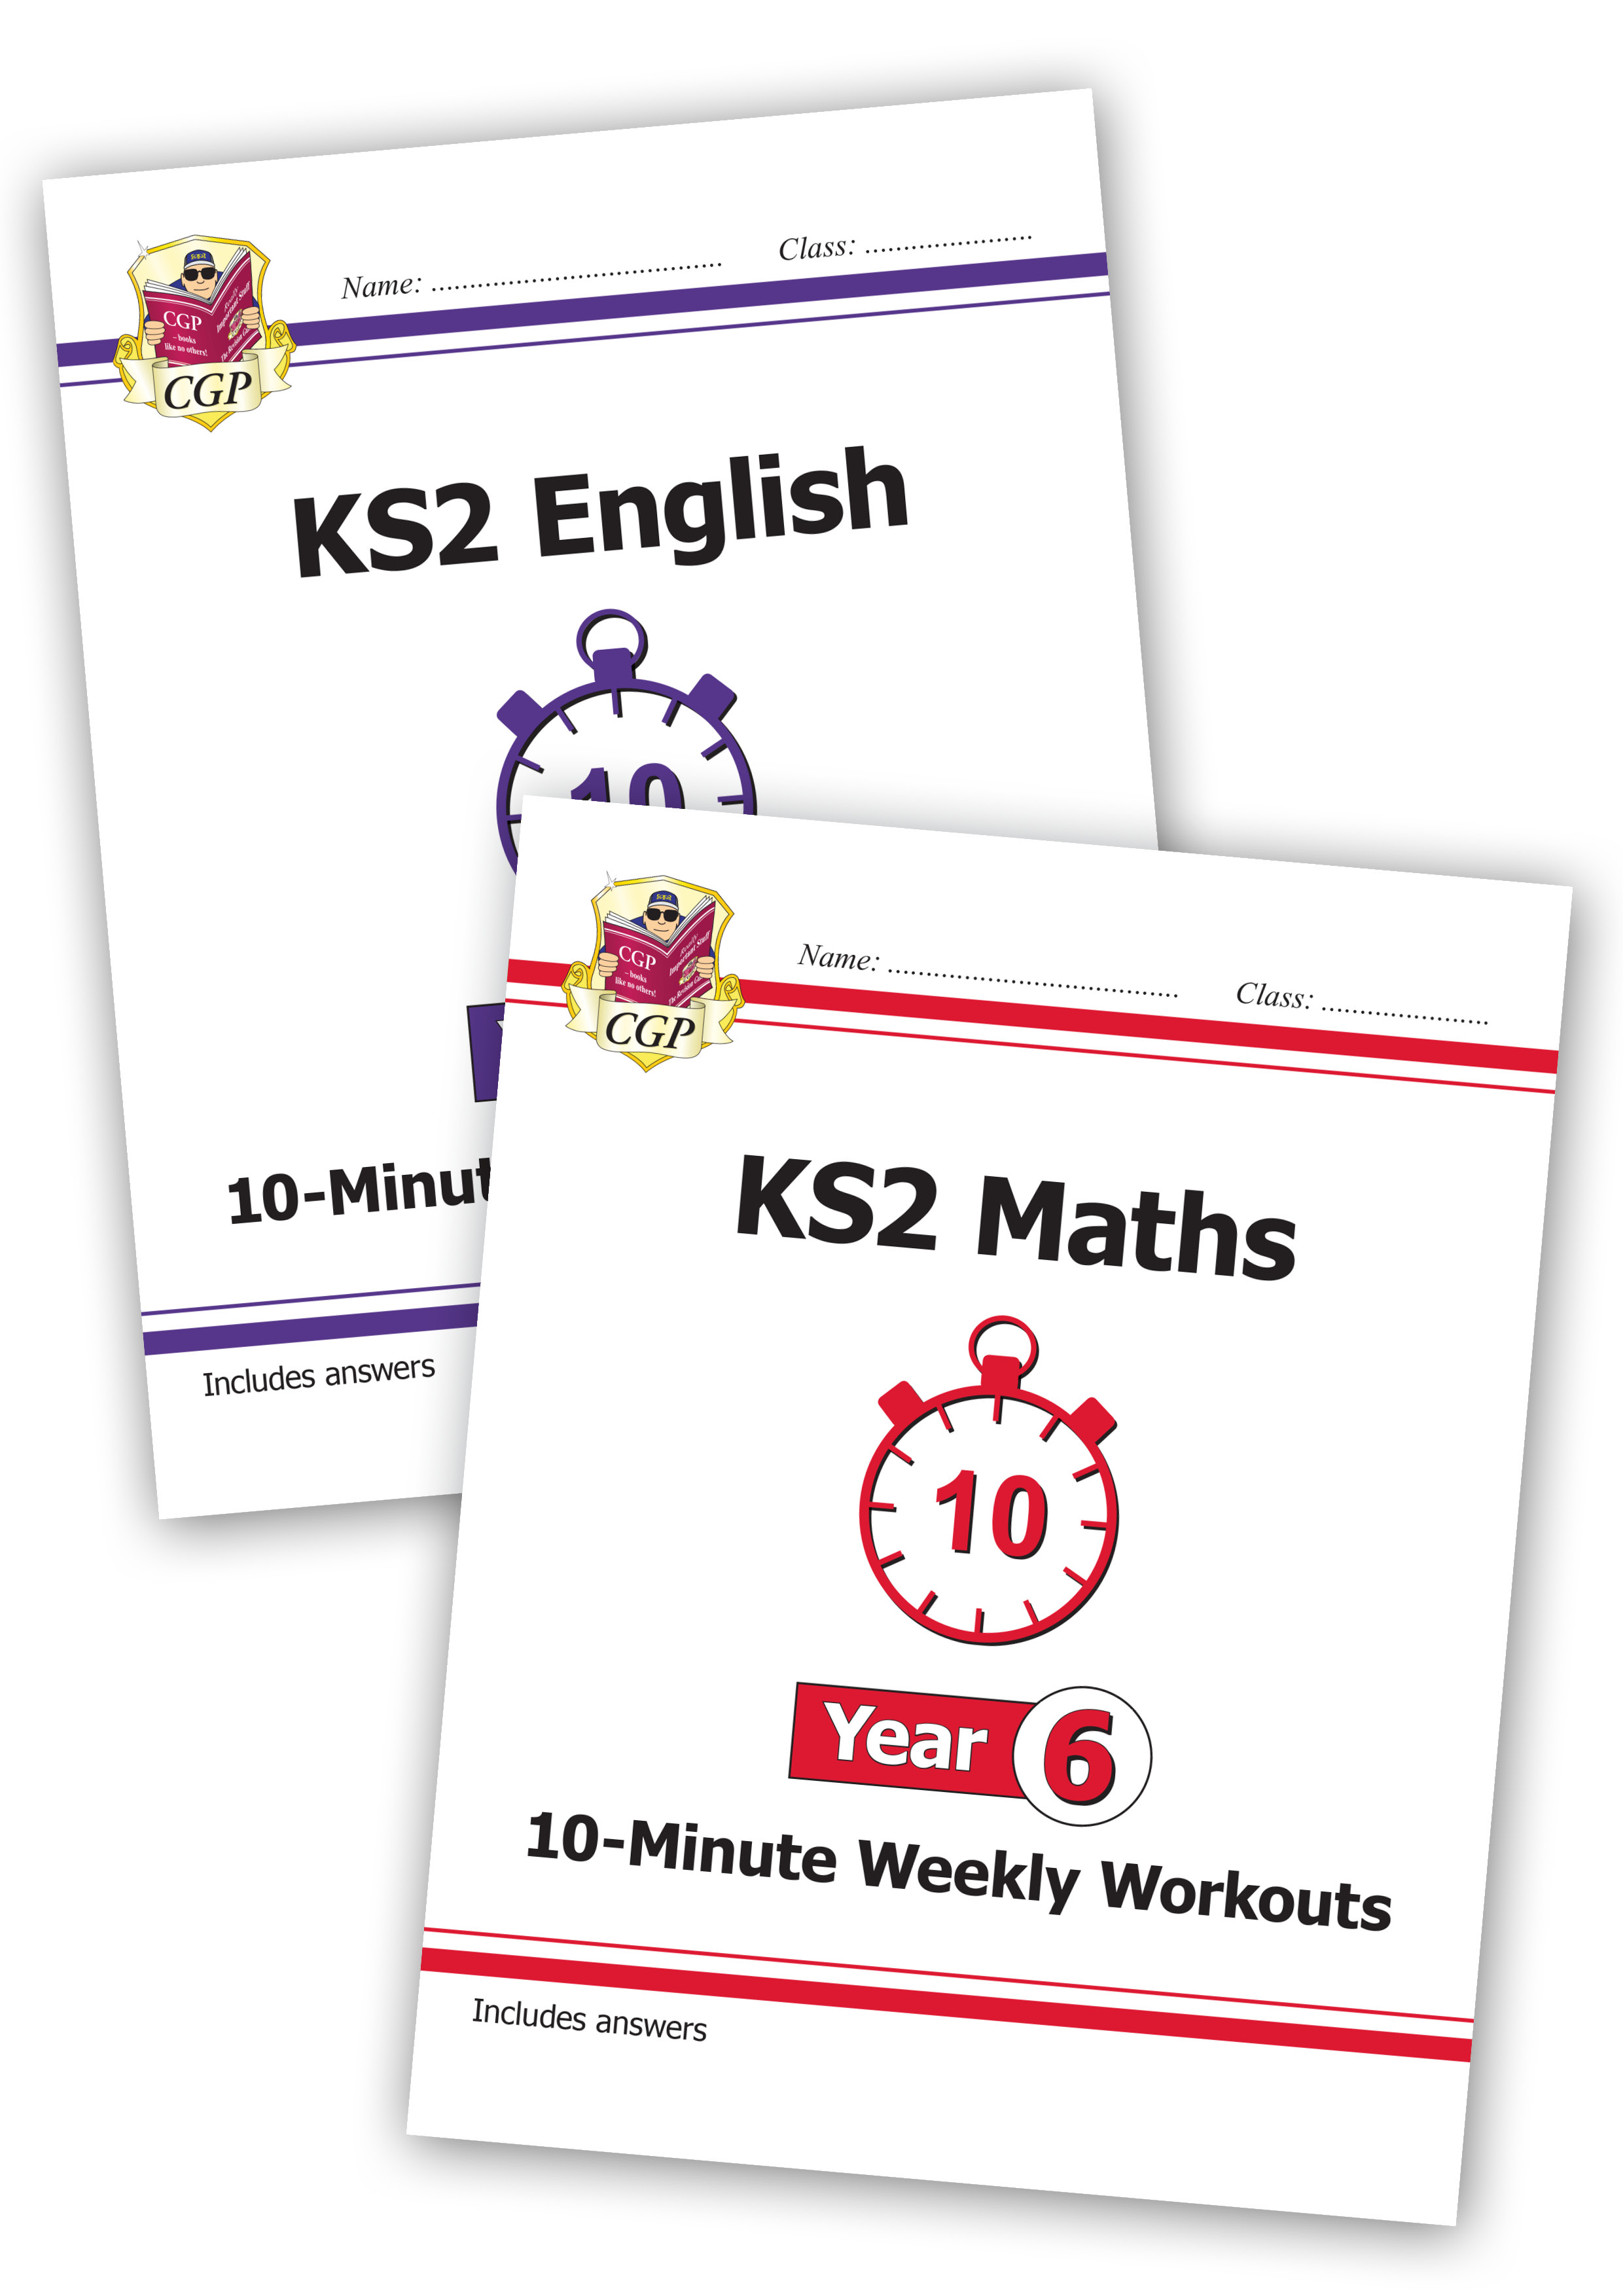 EM6XWB21 - New KS2 Maths and English 10-Minute Weekly Workouts Bundle - Year 6